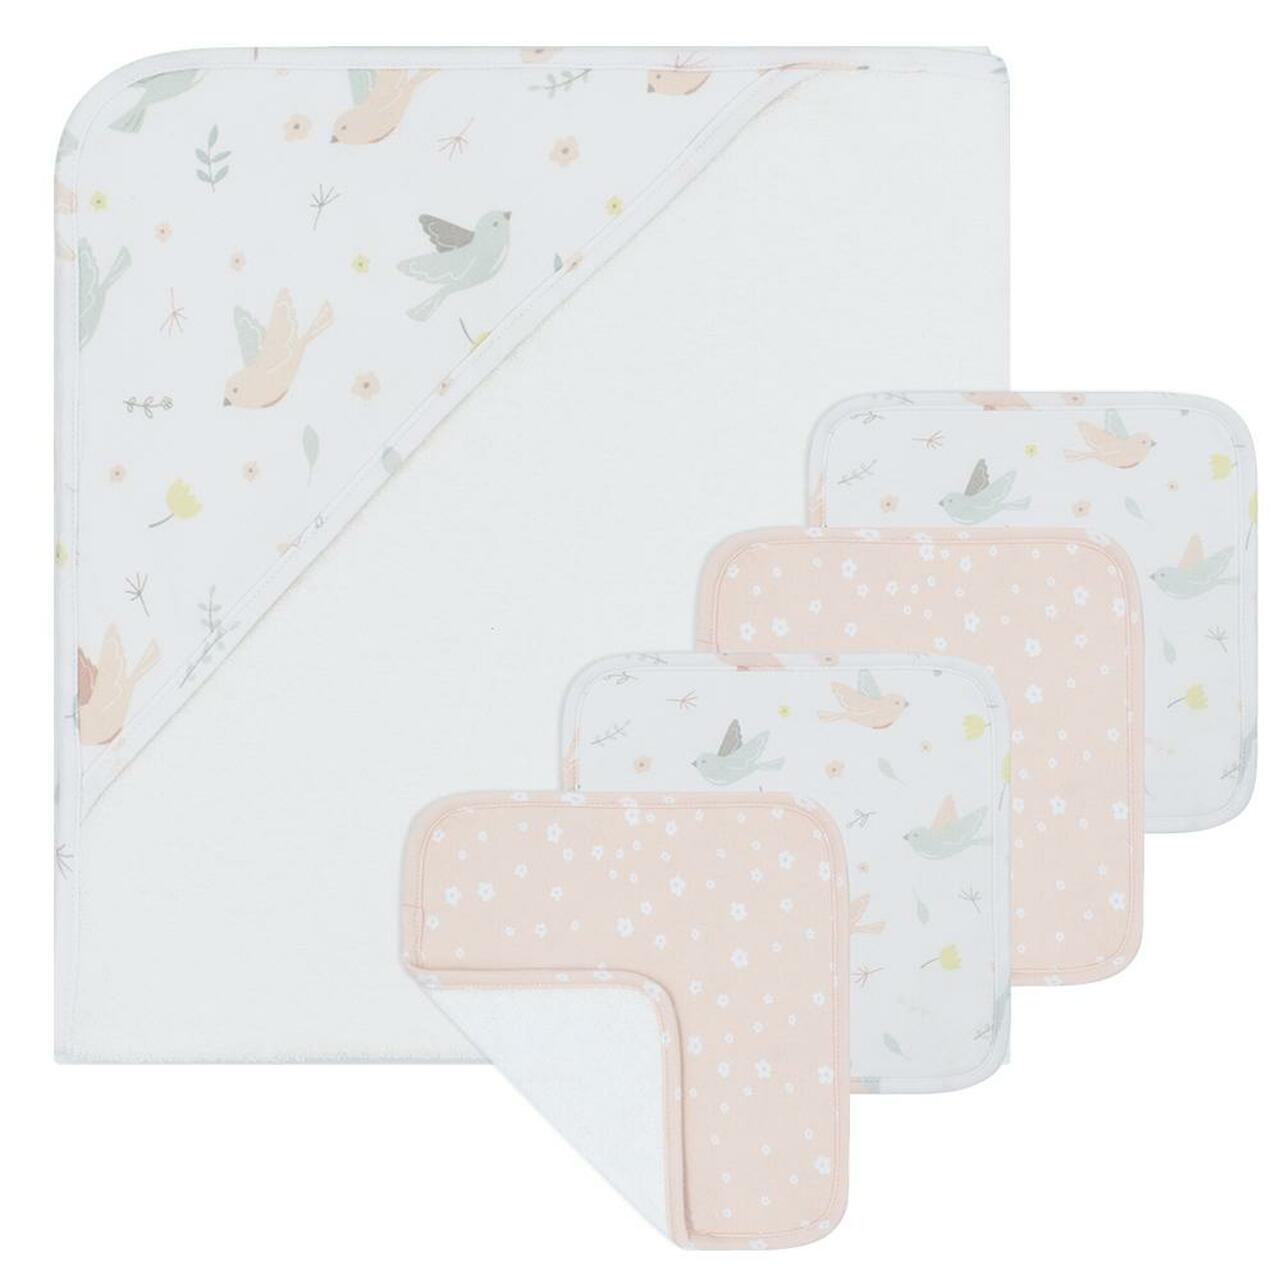 Living Textiles 5pc Bath Gift Set at Baby Barn Discounts Living Textiles essential bath gift set including hooded towel and wash cloths.